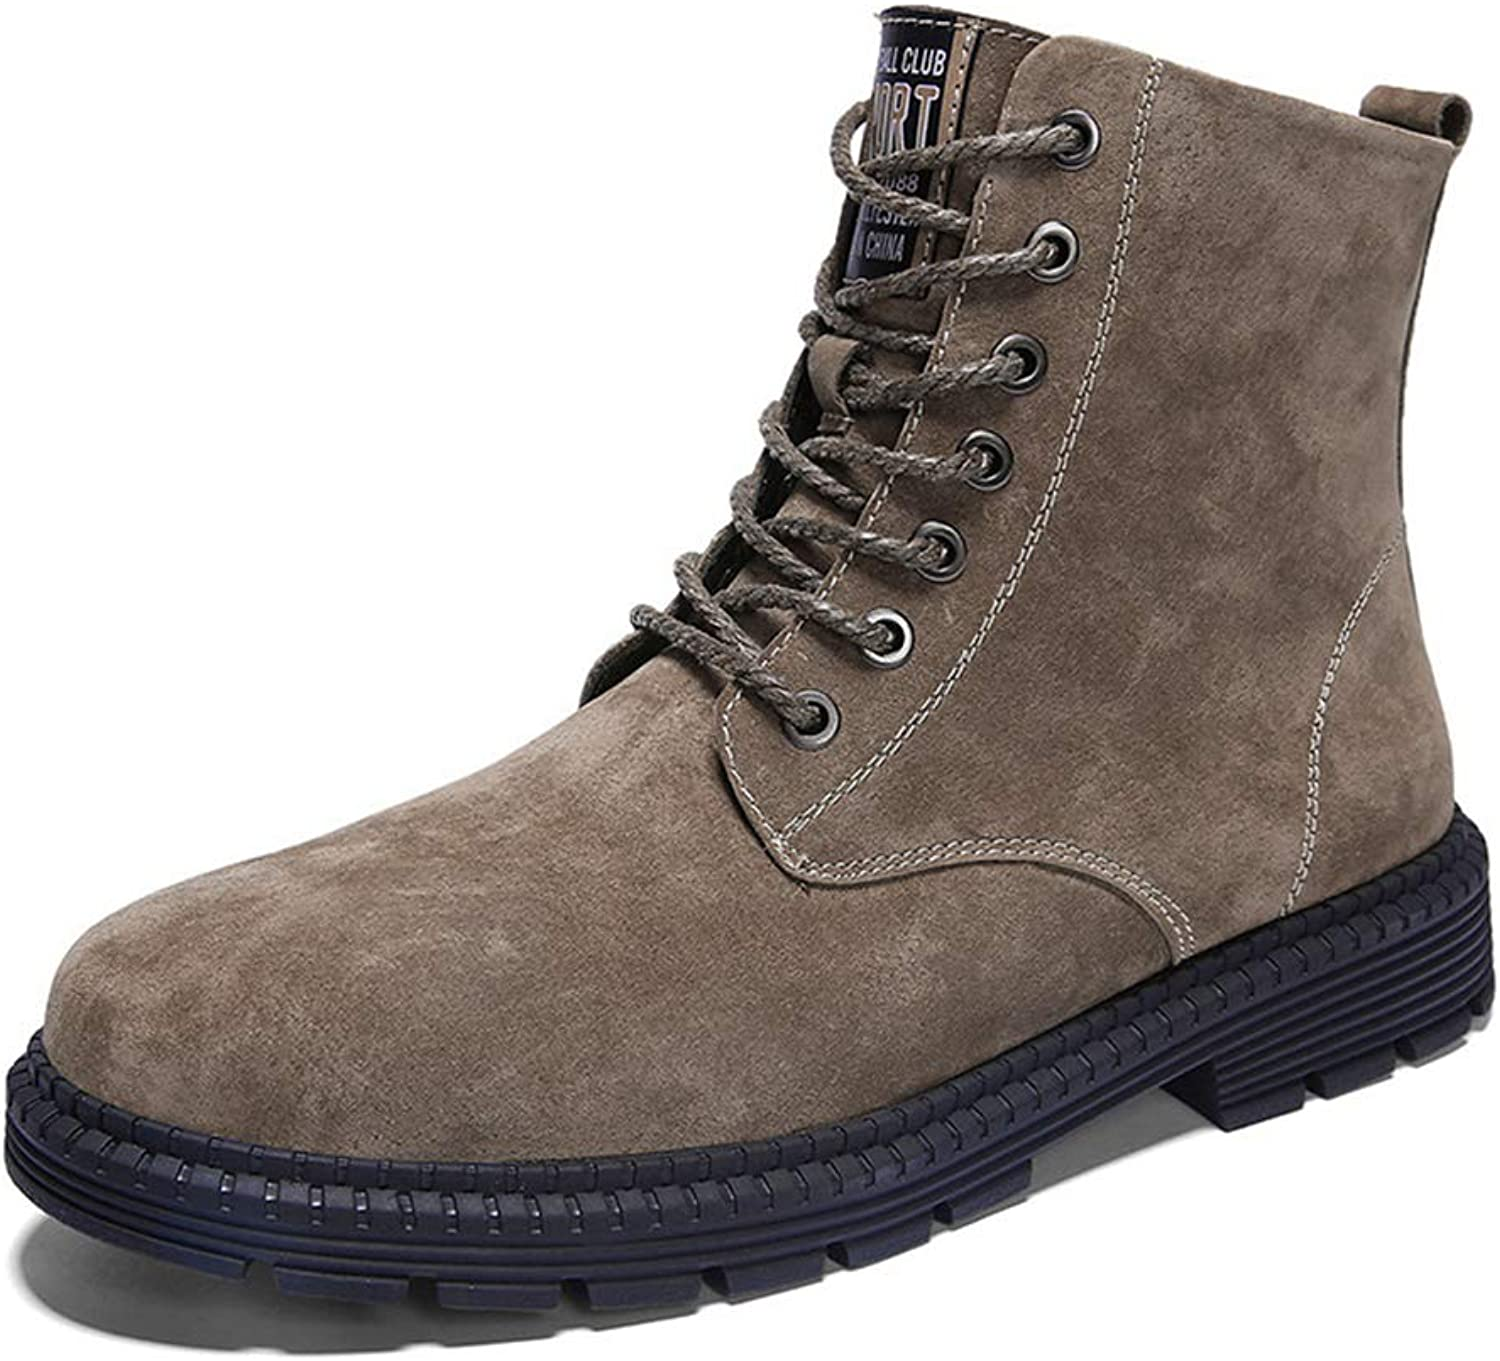 LEFT&RIGHT Men's Leather Martin Boots, Lace-Up shoes England Casual Ankle Boots Short Boots High shoes Winter Warm Snow shoes Outdoor Casual shoes